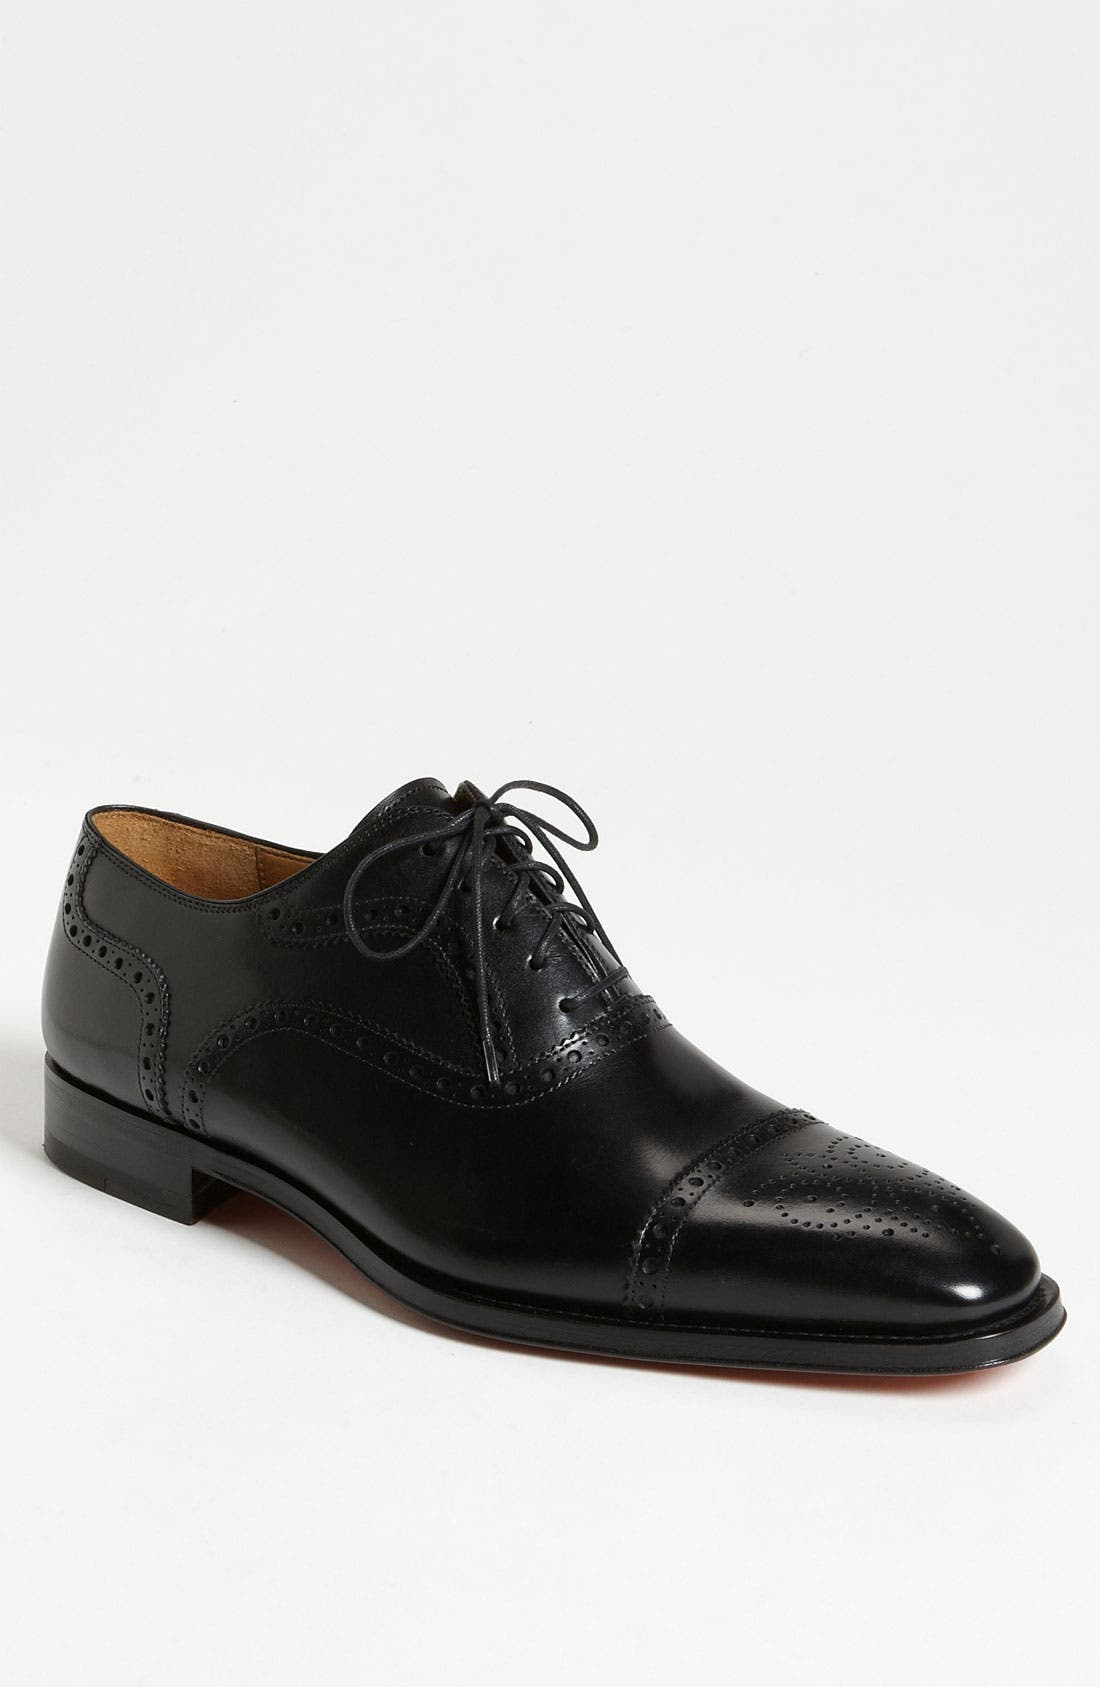 Alternate Image 1 Selected - Magnanni 'Santiago' Cap Toe Oxford (Men)